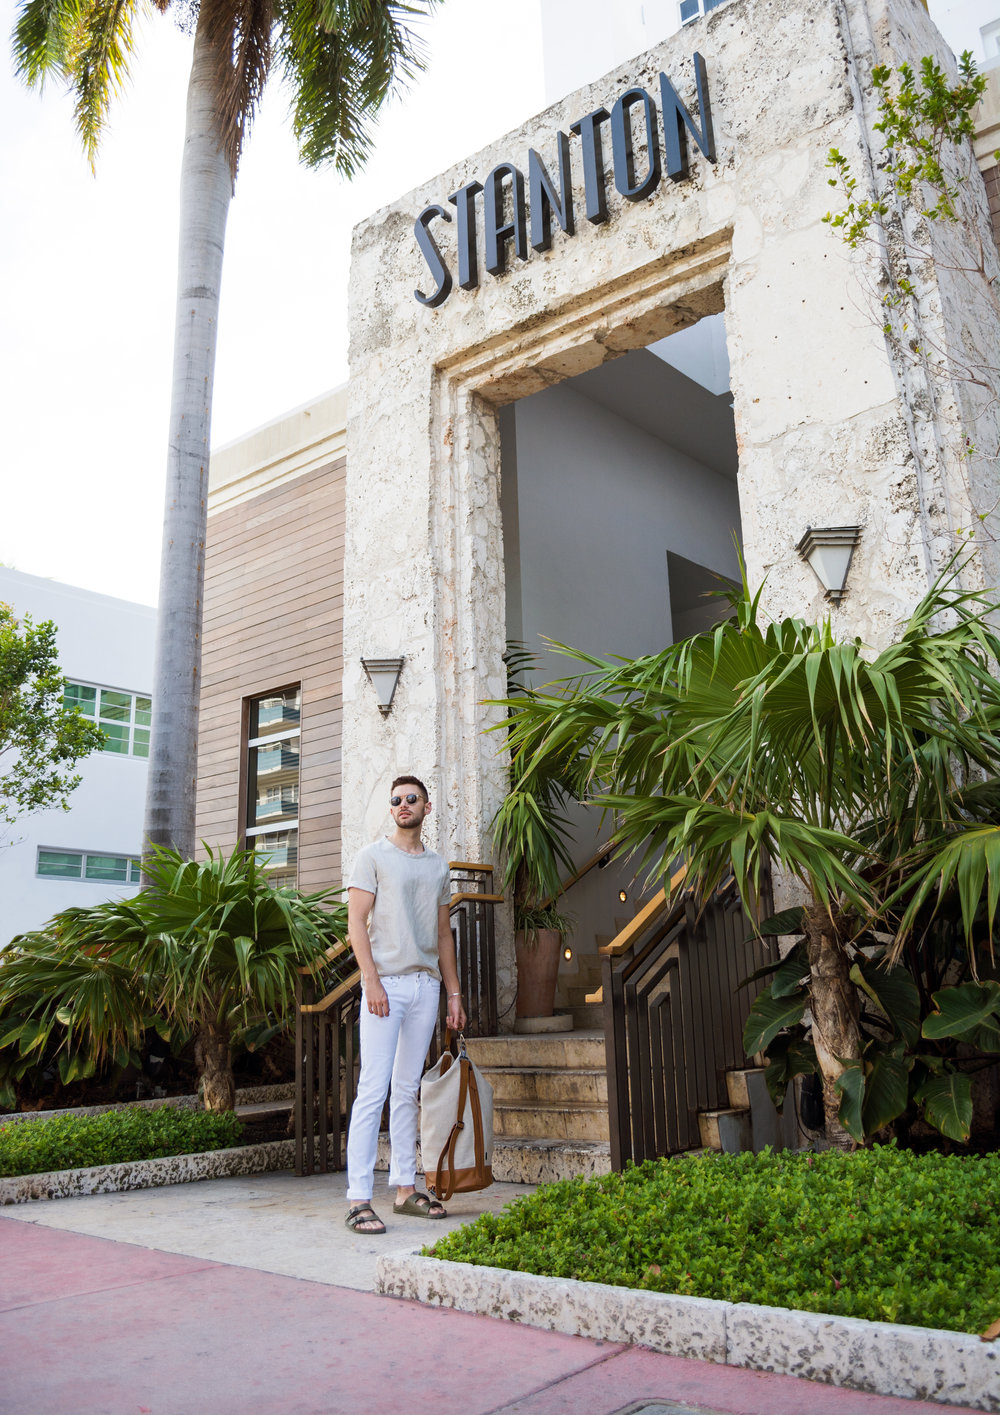 #OtterExpedition : Stanton SoBe